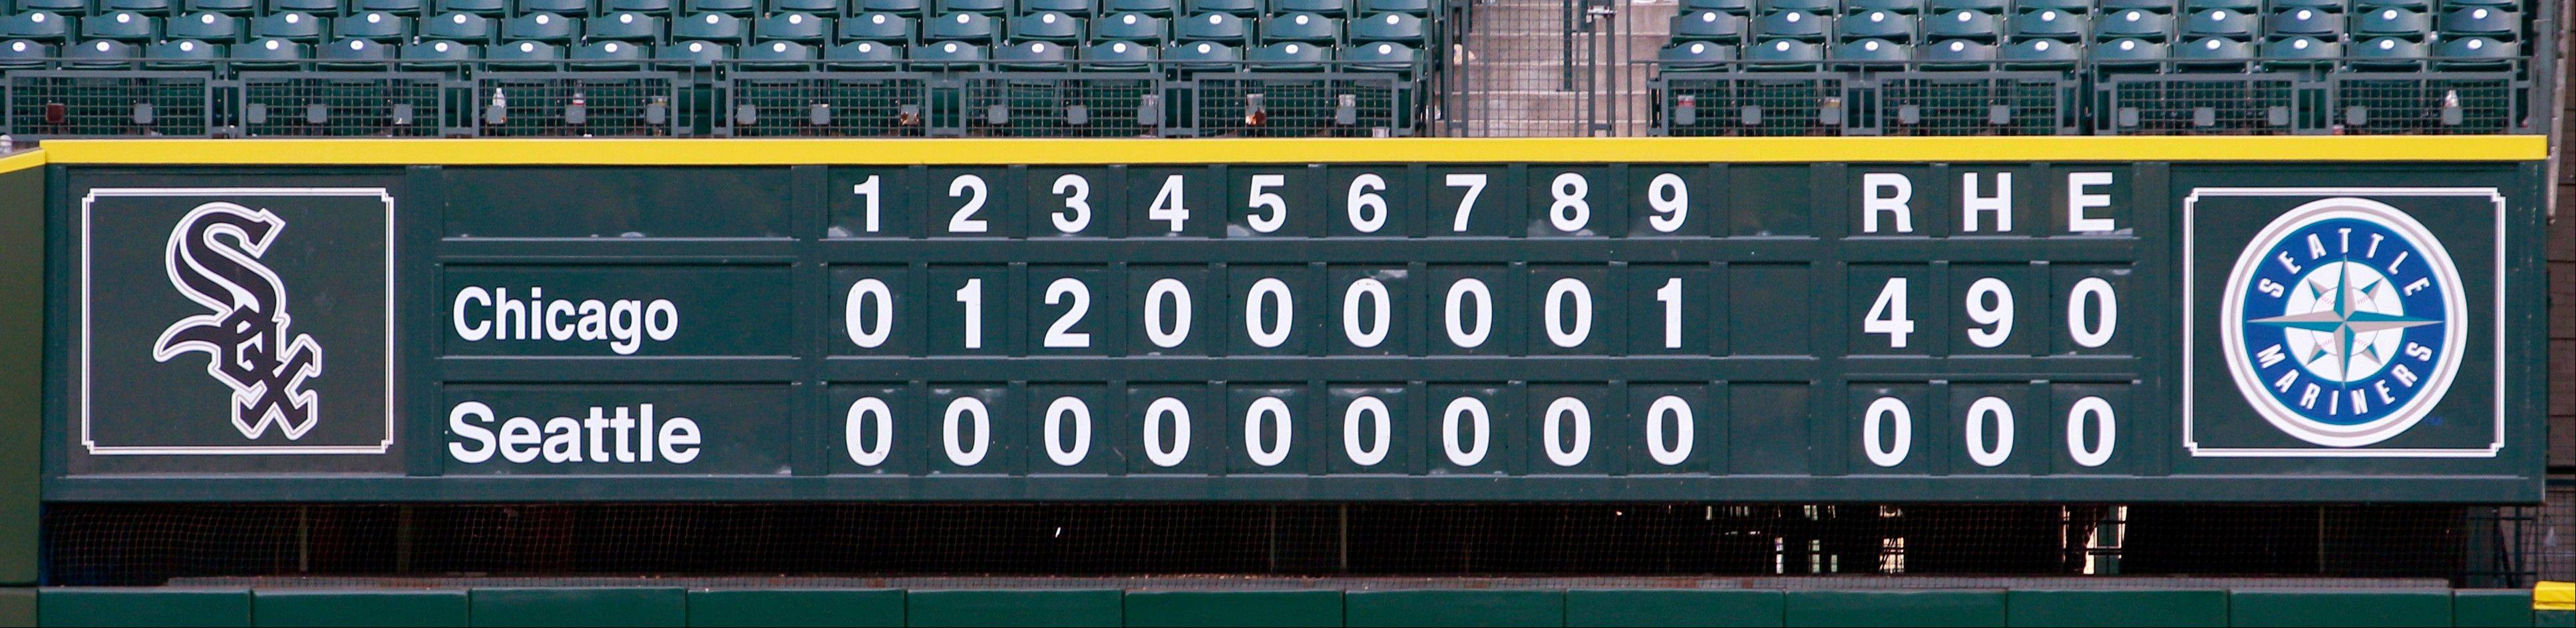 The scoreboard after White Sox starting pitcher Phil Humber threw a perfect game.